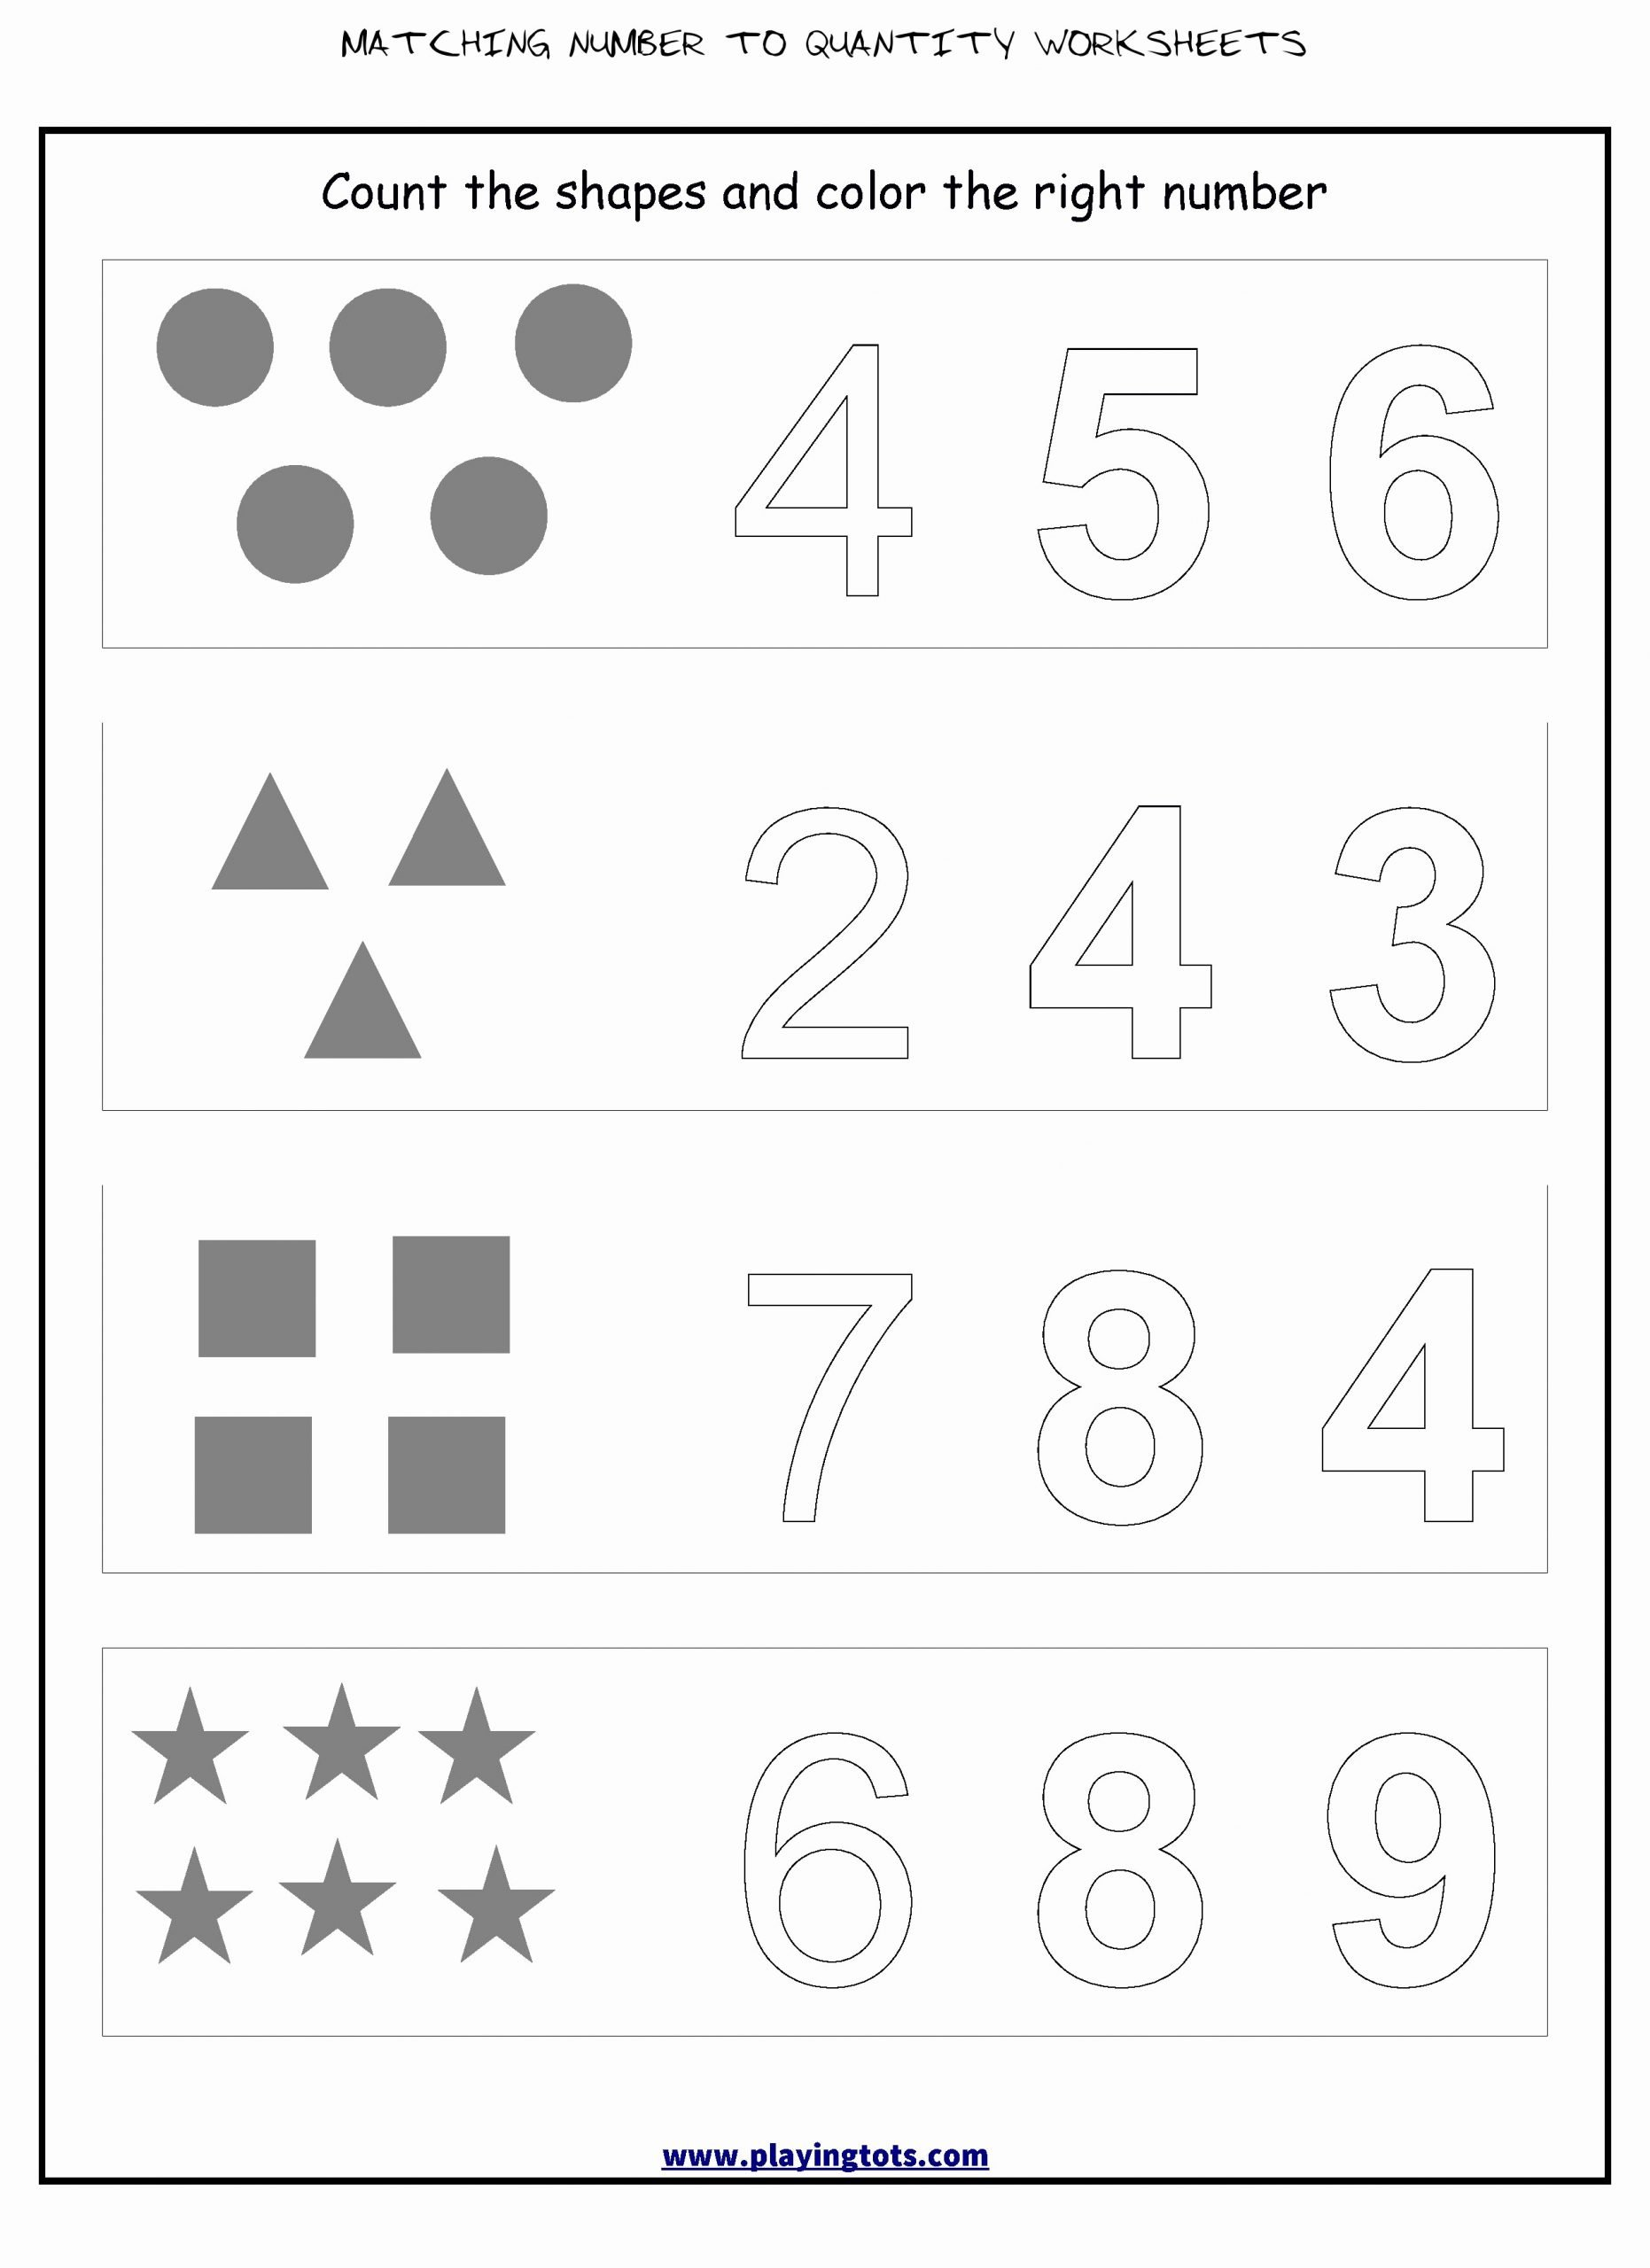 Matching Numbers Worksheets for Preschoolers Awesome √ 29 Matching Number to Quantity Worksheets